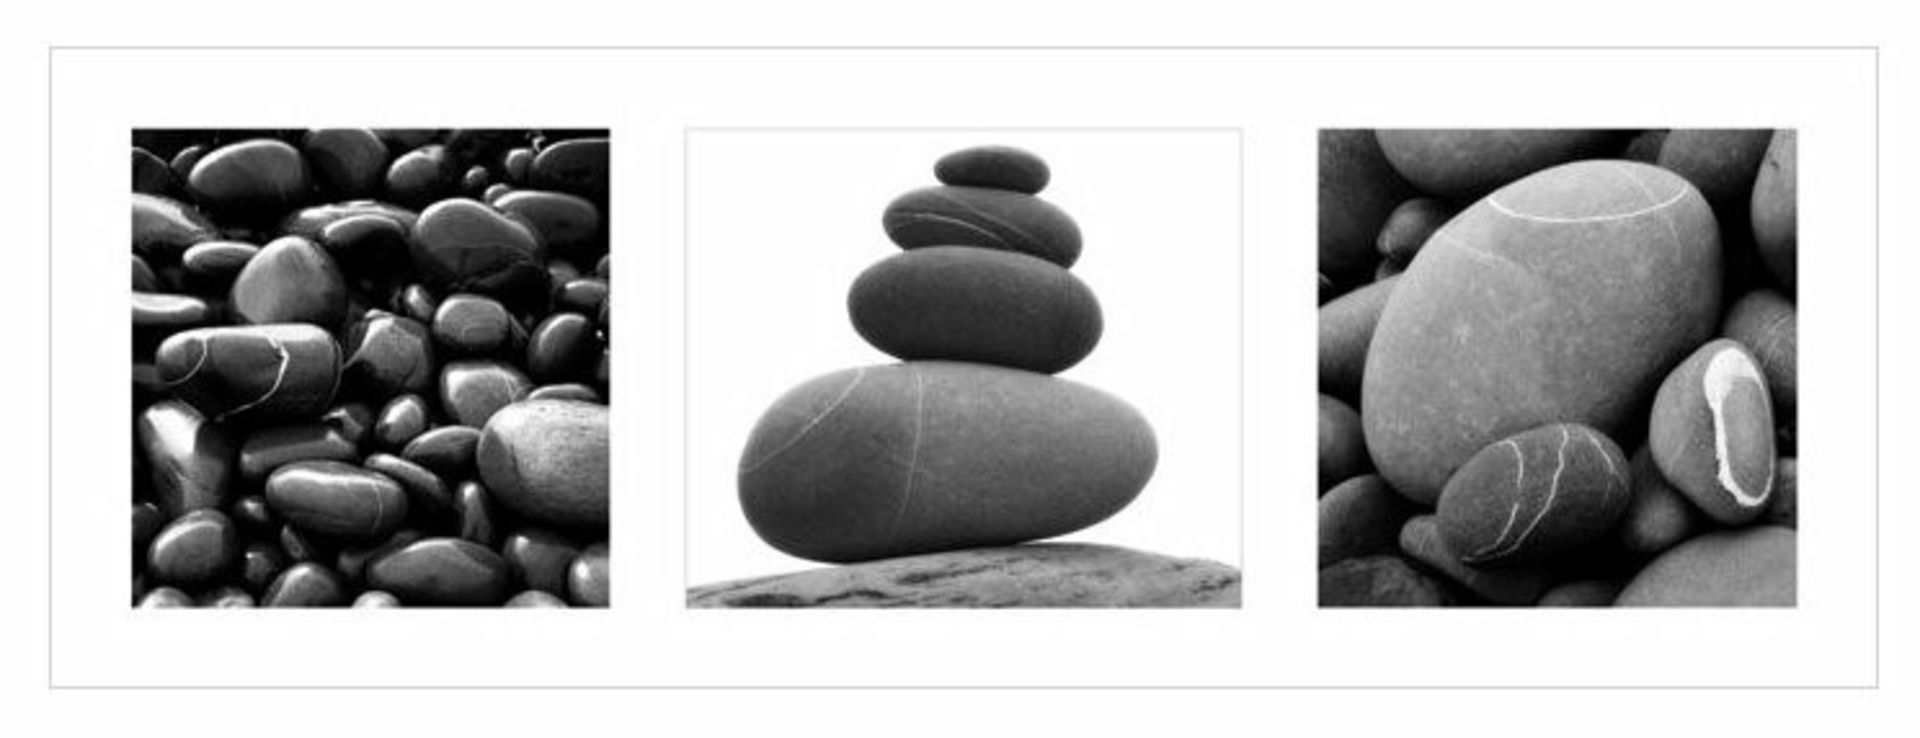 East Urban Home, Stones' 3 Piece Photographic Print Set (ROLLED UP) - RRP £19.99 (APET2319.